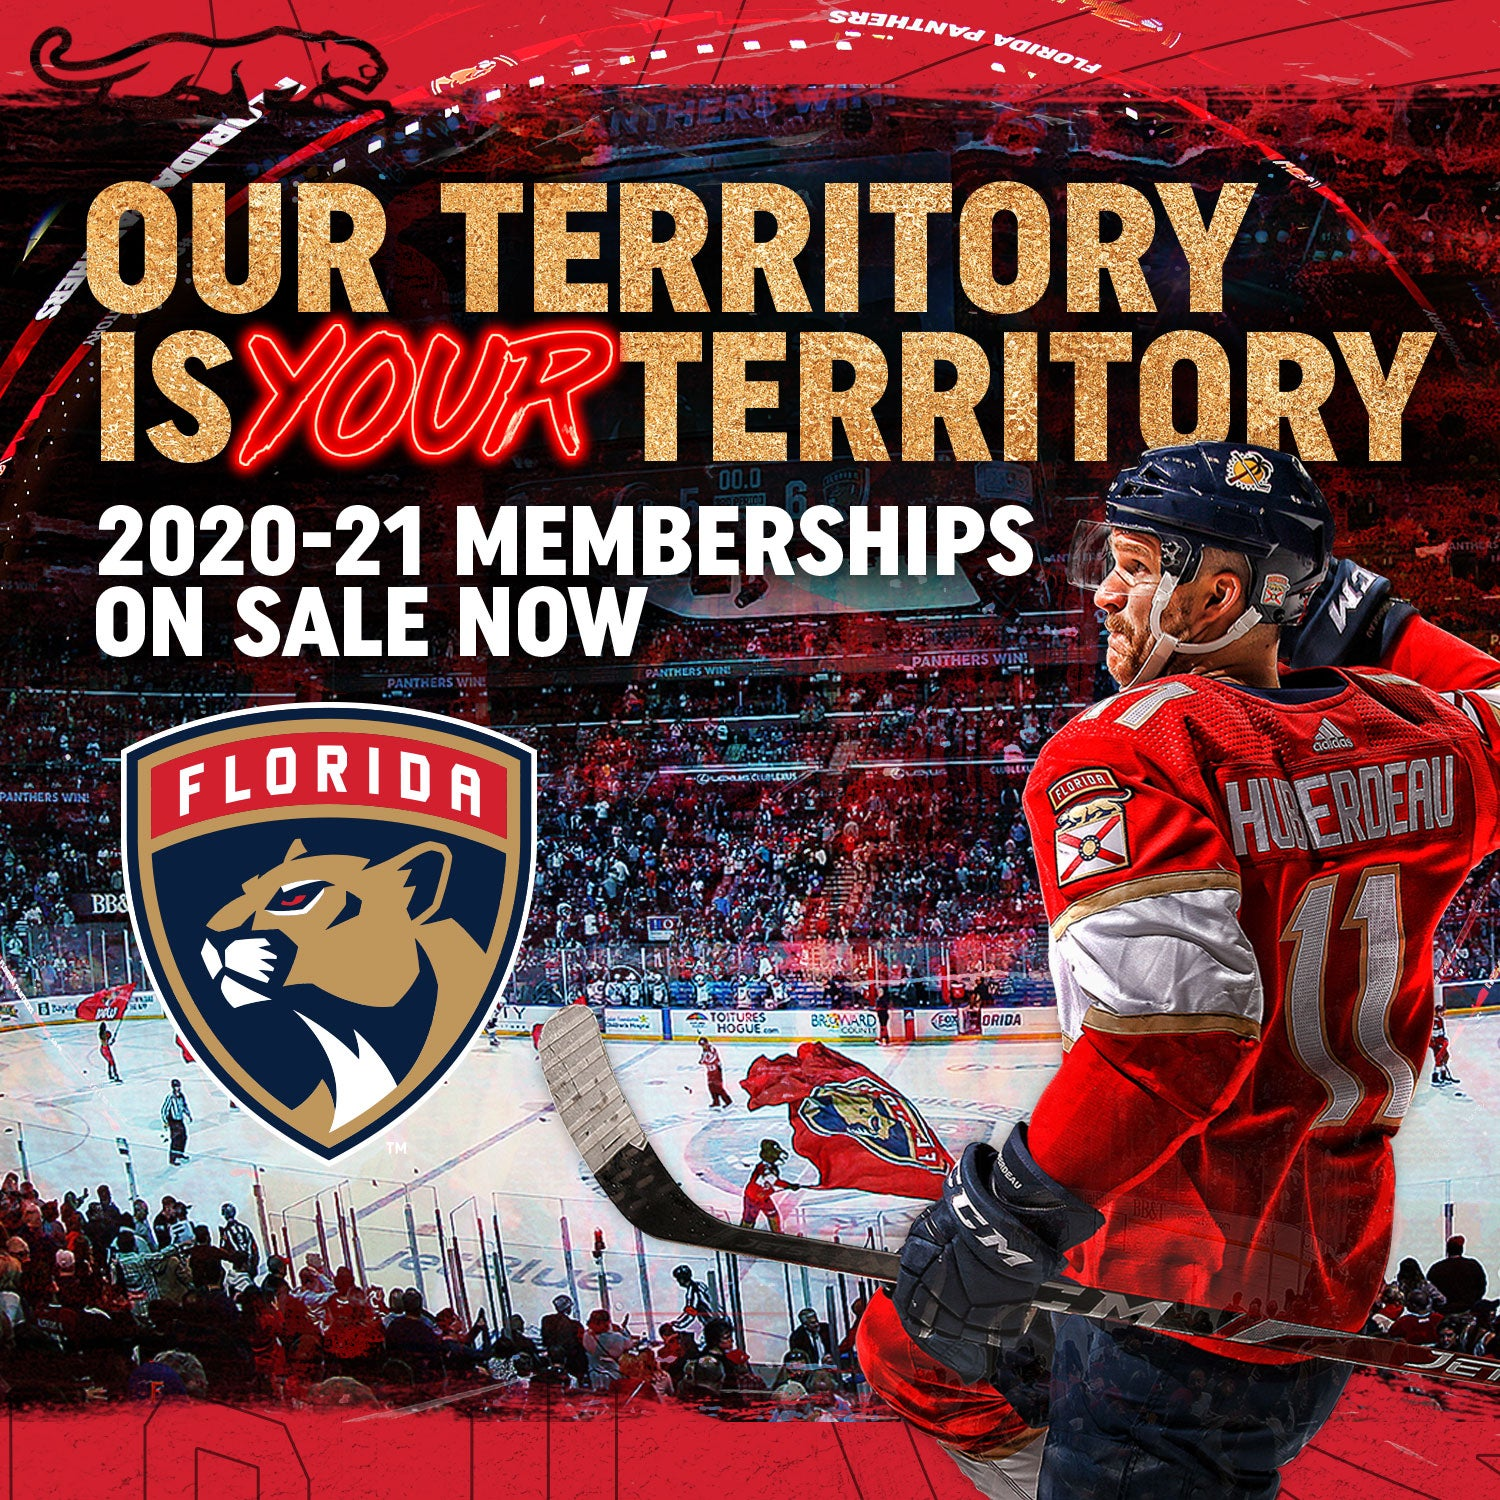 More Info for Florida Panthers Season Ticket Territory Memberships Available Now